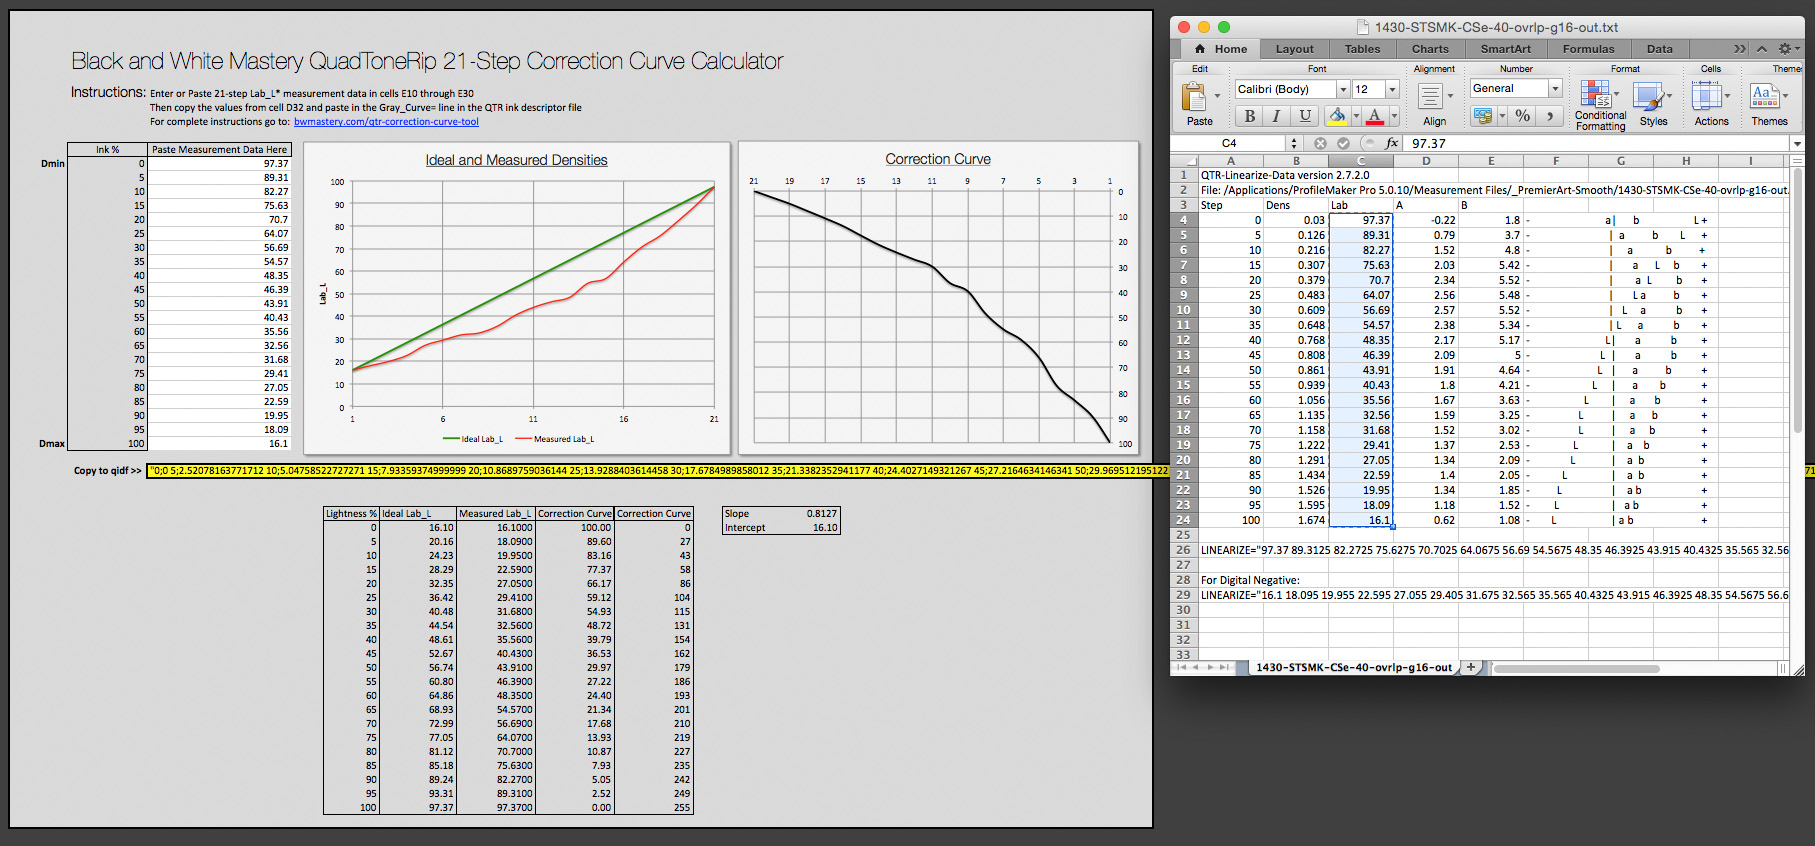 Measurement file used to create Correction Curve and for the Standard QTR Linearization Comparison for the profile with an overlap of 40 and a Gray Gamma setting of 1.6